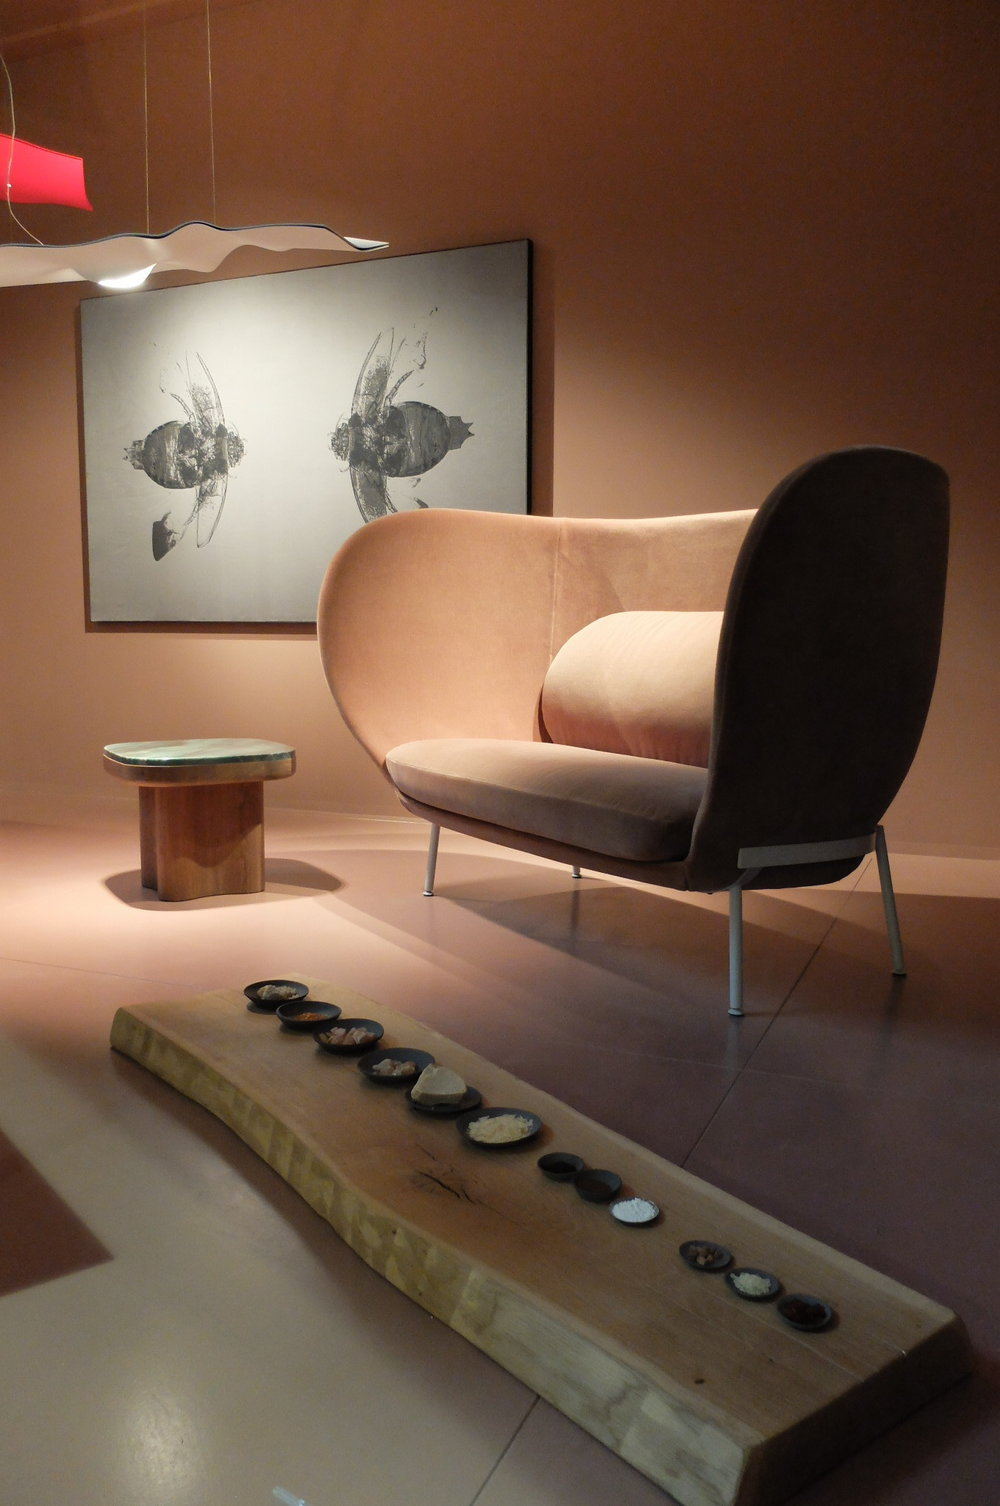 Sofa by Doshi Levien and natural resins, waxes and pigments. SCHOTTEN & HANSEN + MOROSO